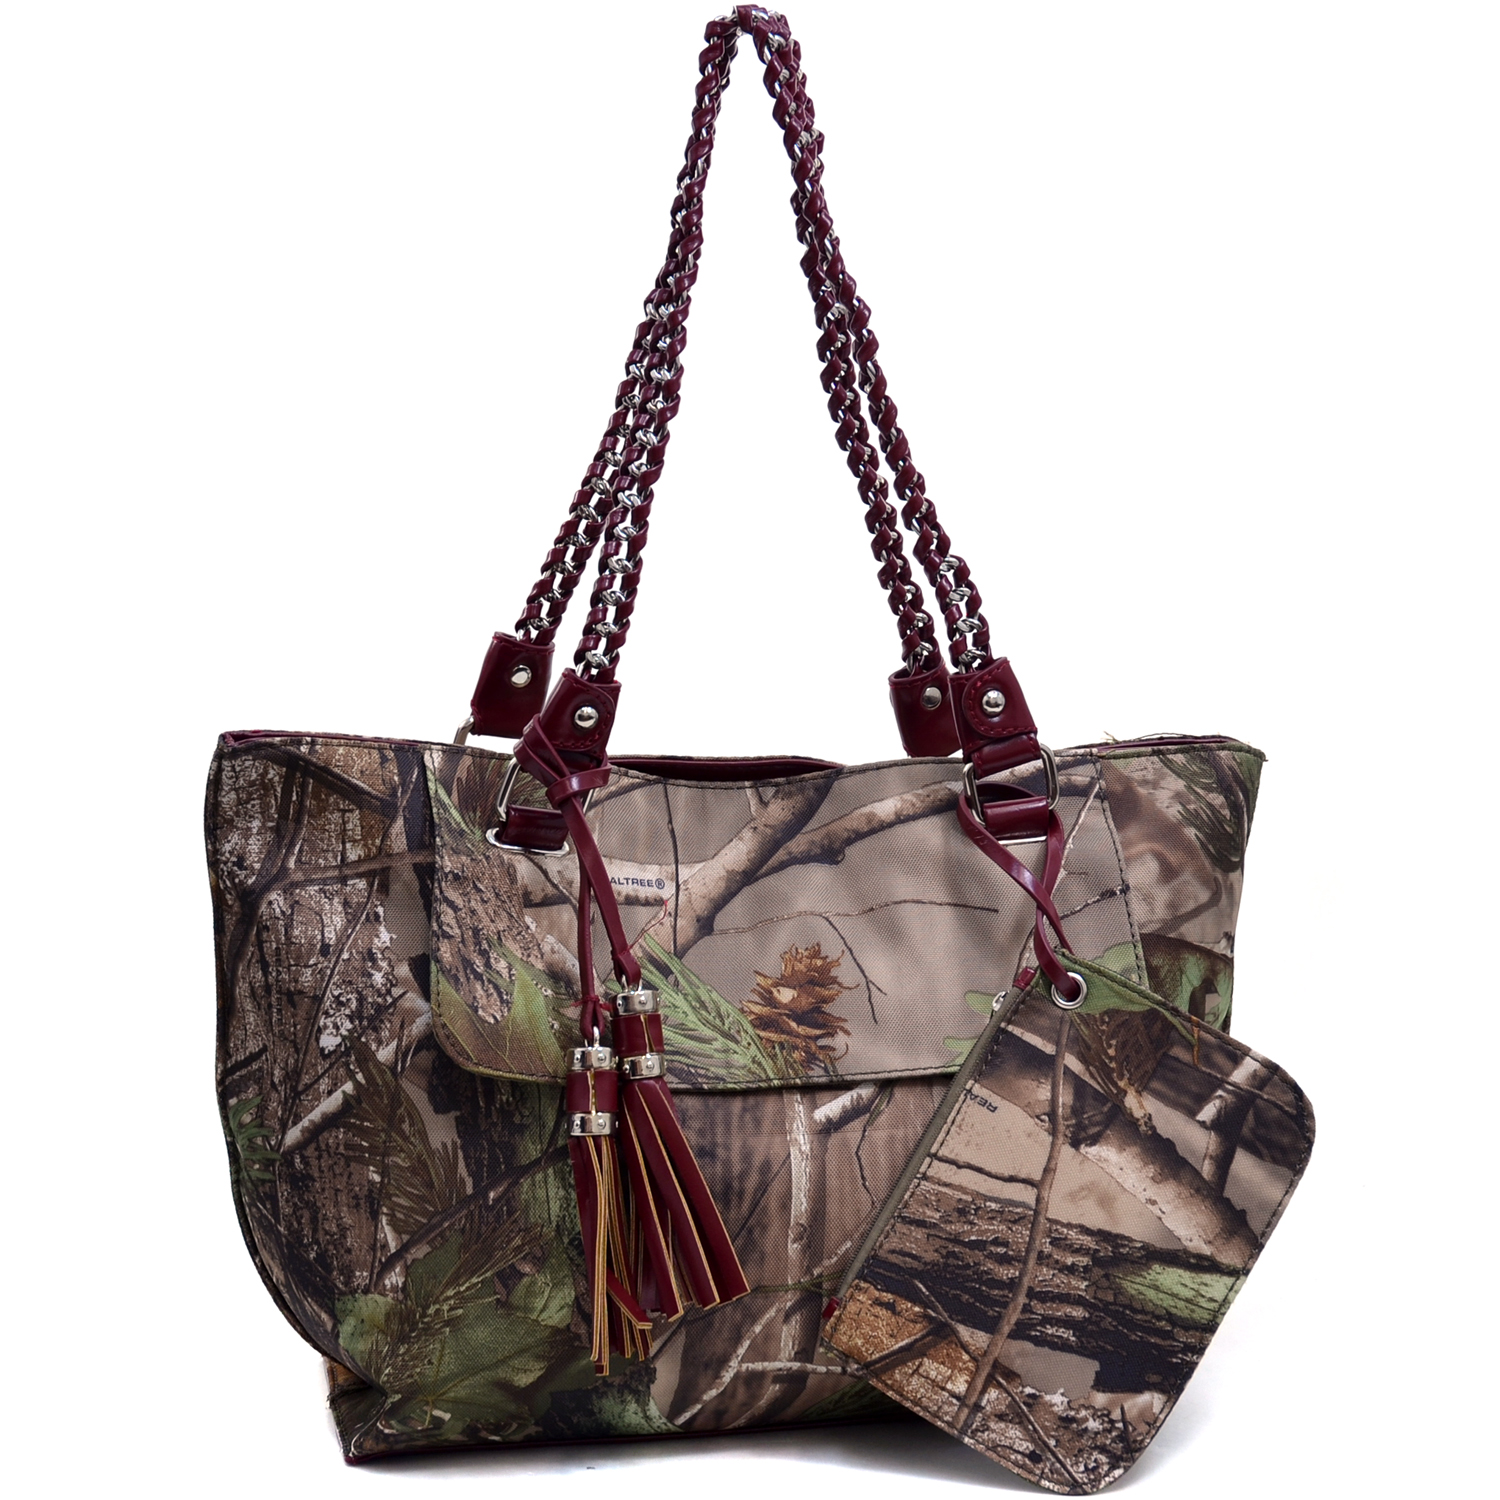 Realtree® camouflage tote bag with coin purse tassels - Camouflage/Red